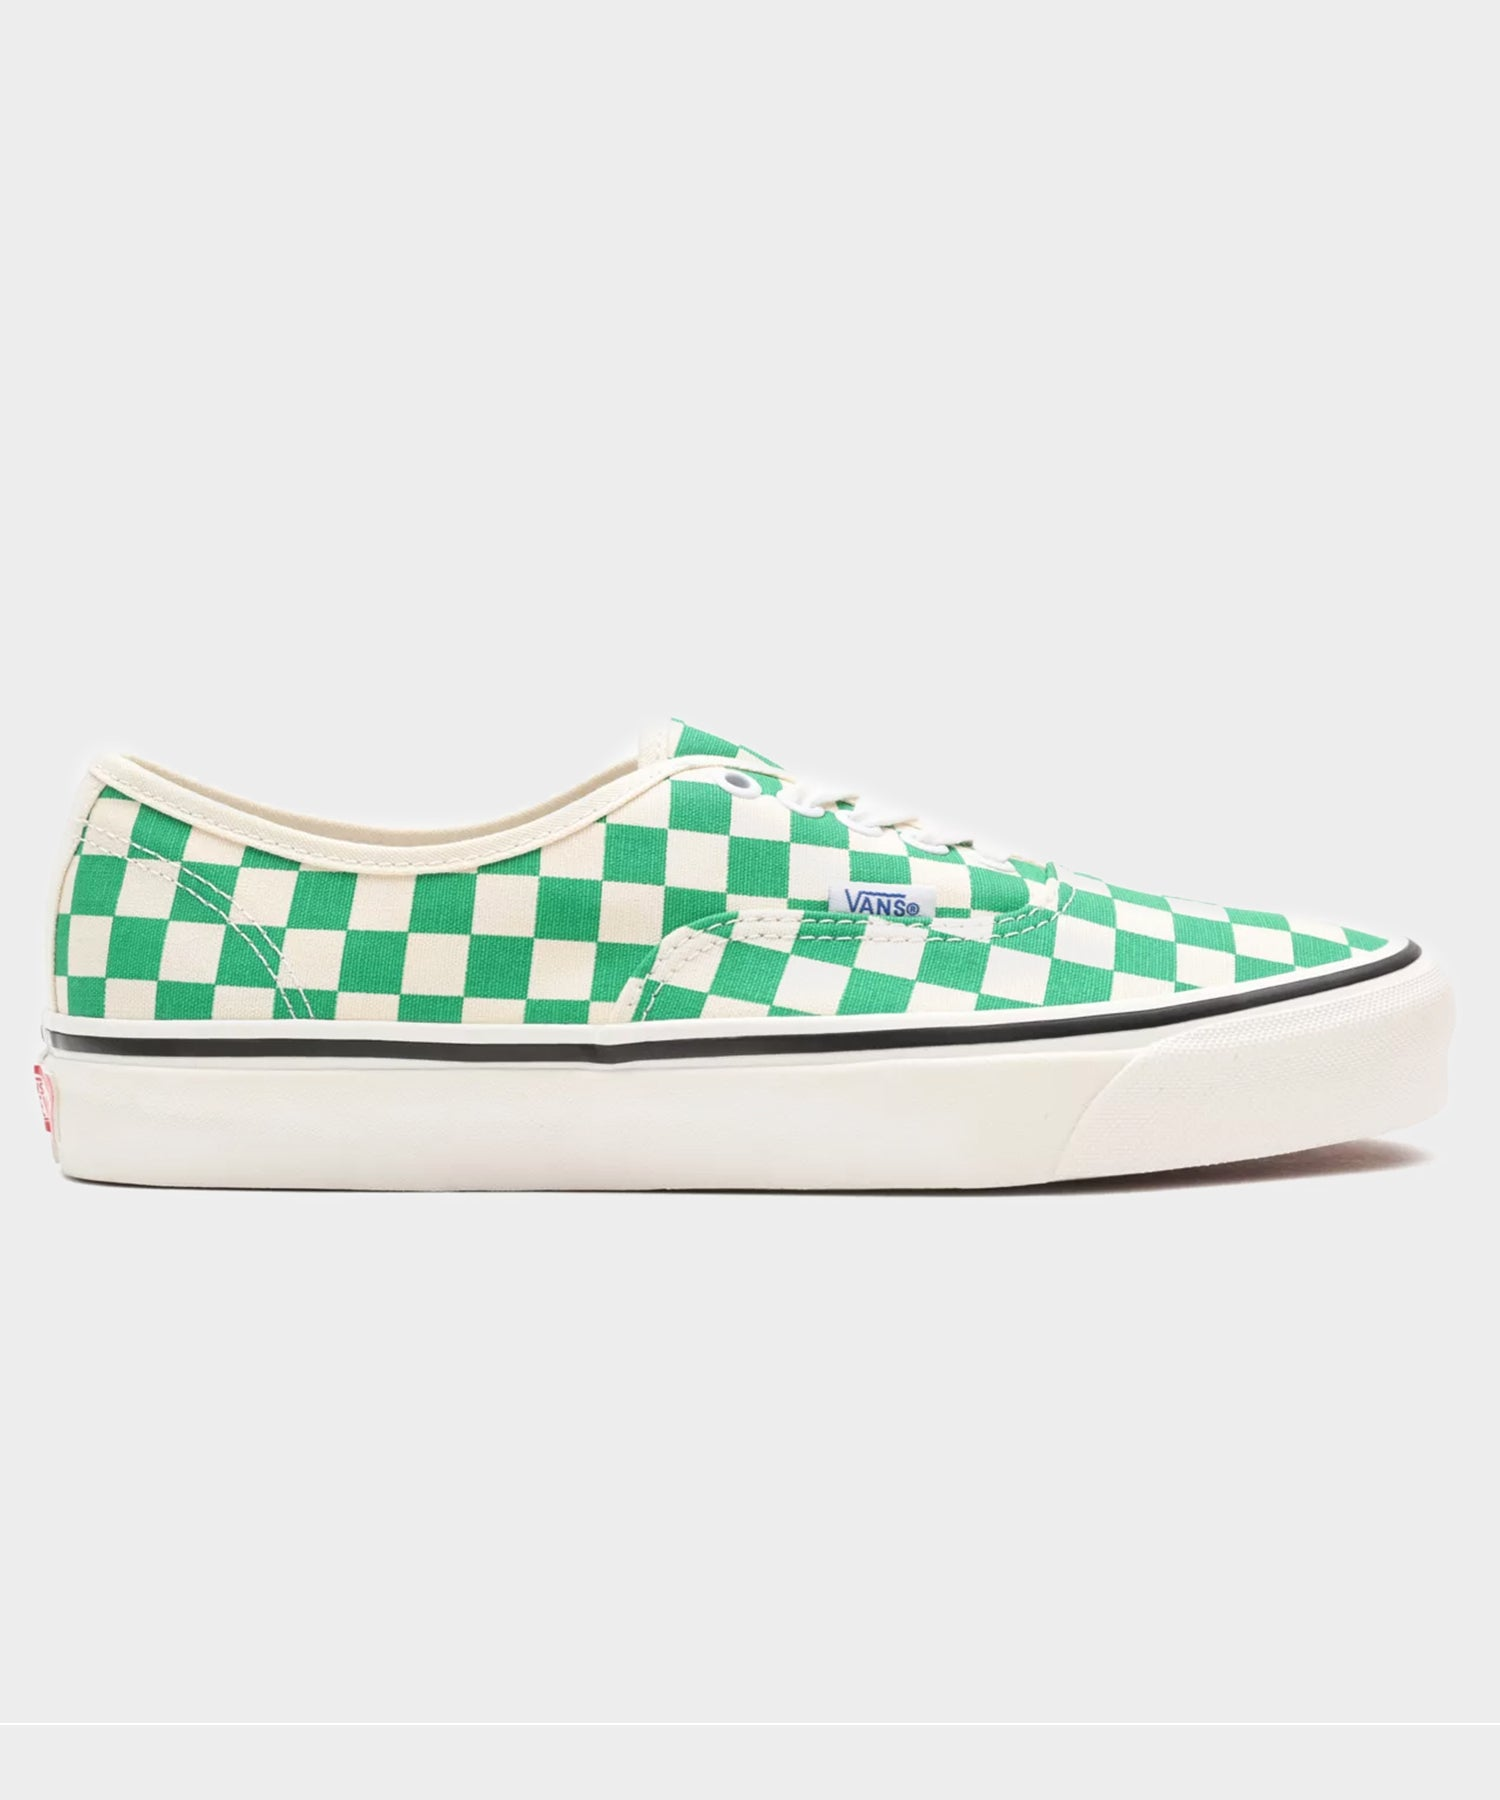 VANS ANAHEIM FACTORY AUTHENTIC 44 DX IN GREEN CHECKERBOARD